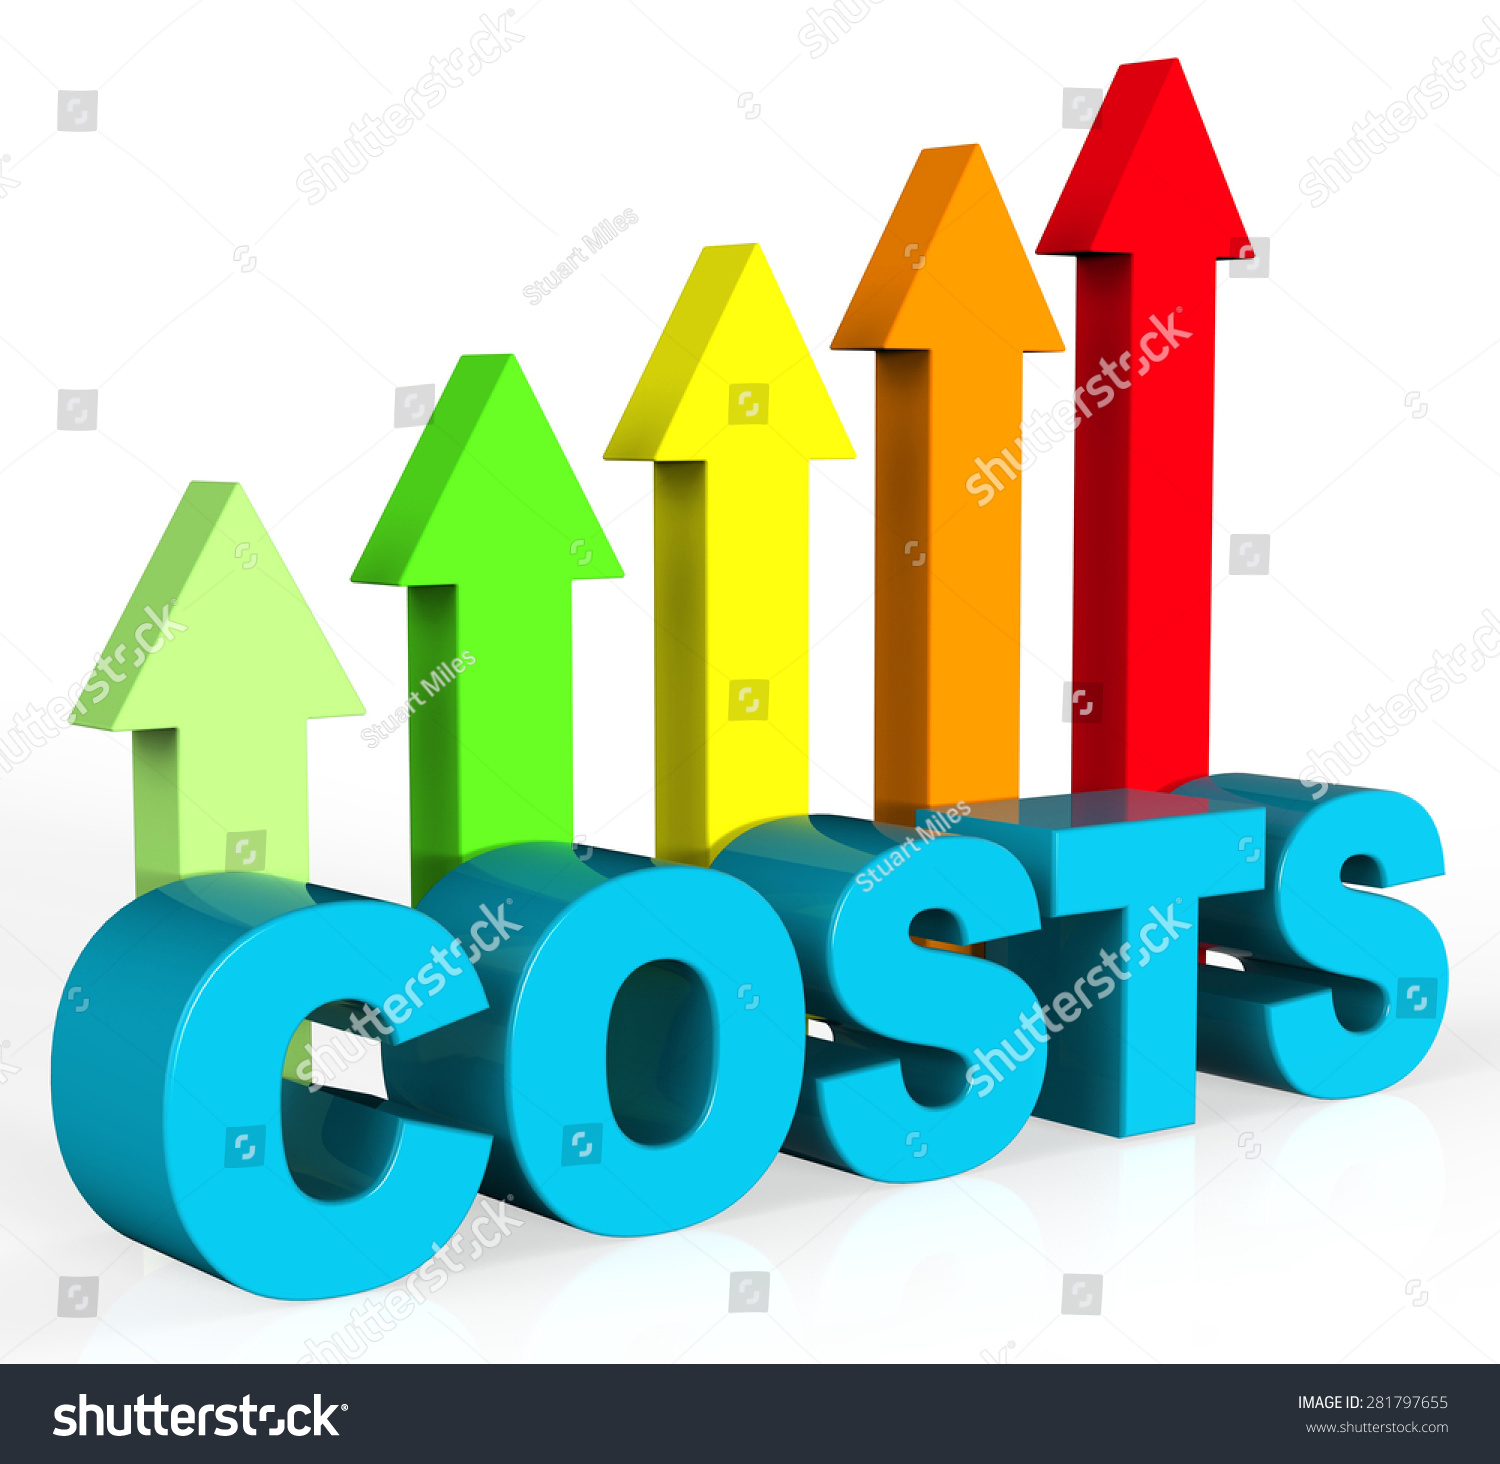 Increase costs meaning growing money balance stock illustration increase costs meaning growing money and balance biocorpaavc Images